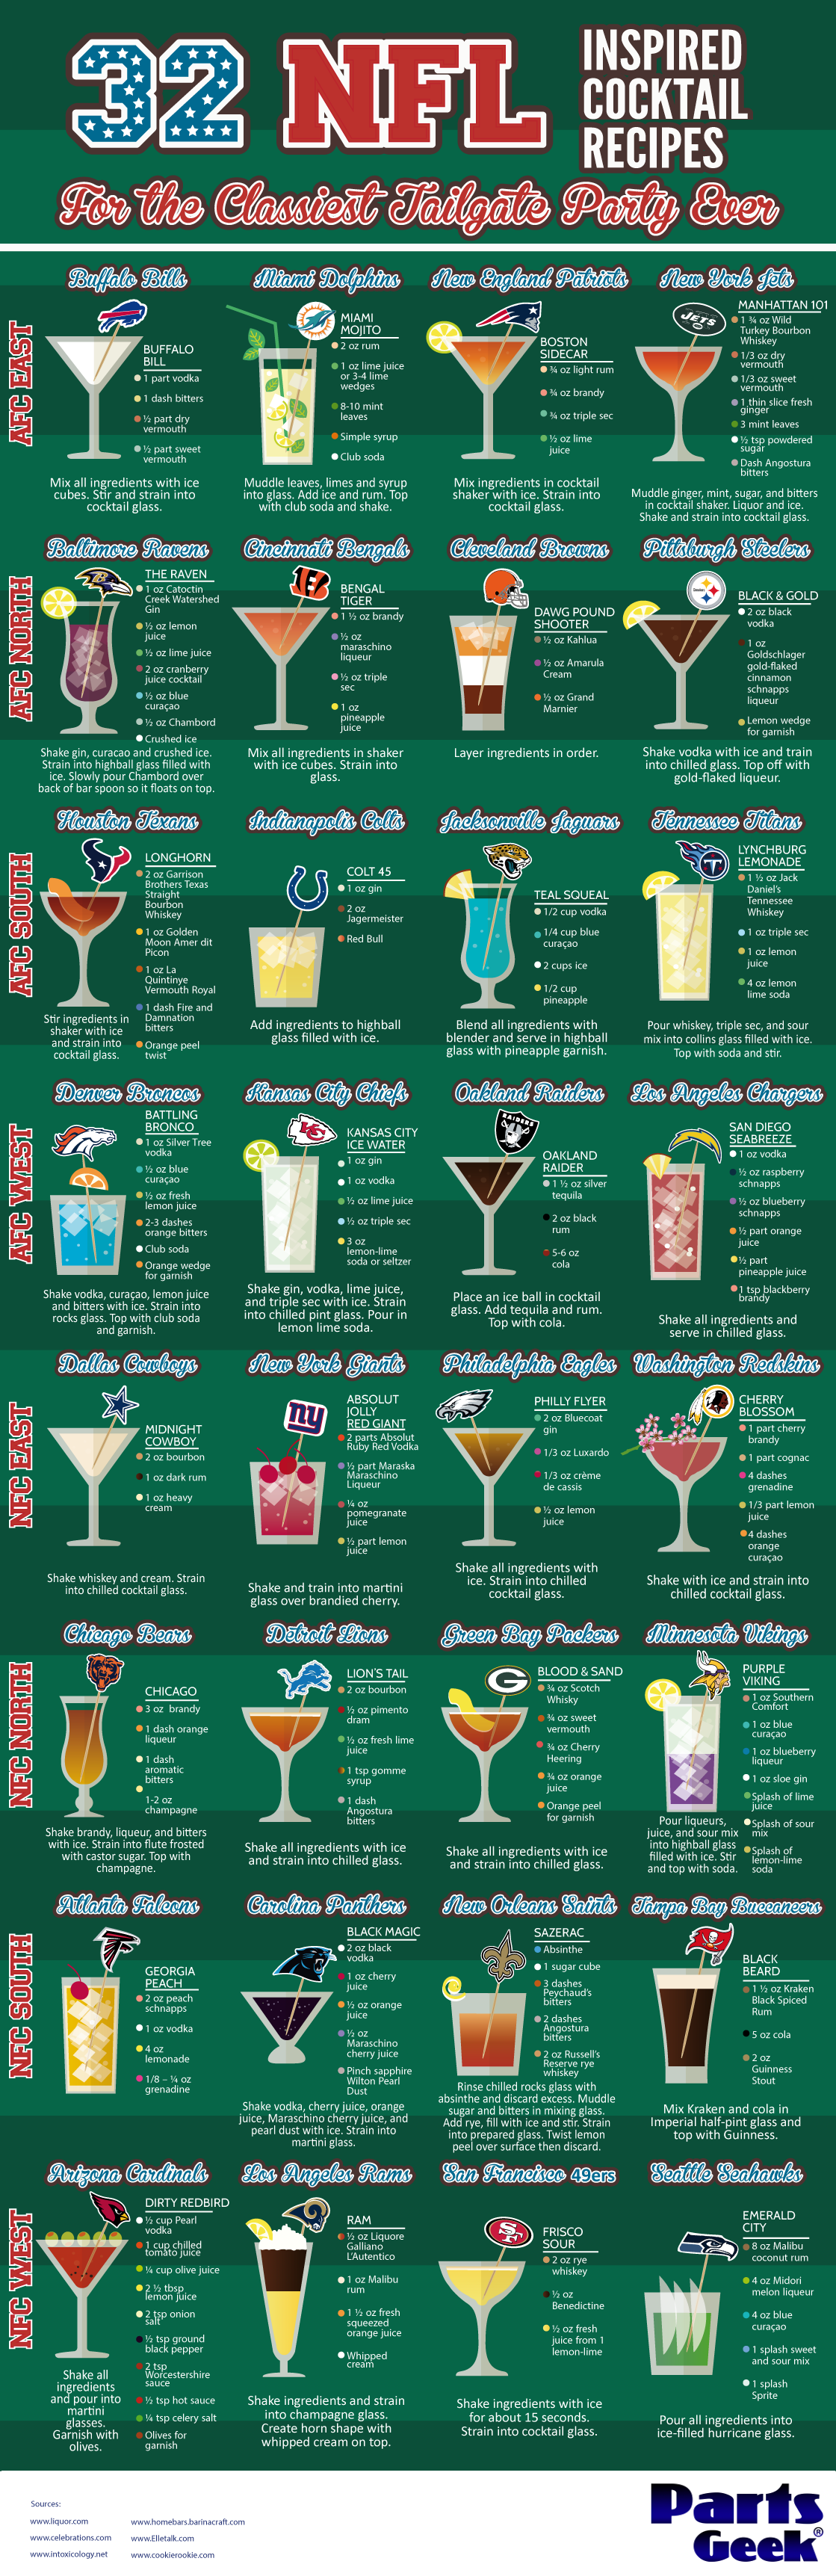 32 NFL Inspired Cocktail Recipes #infographic